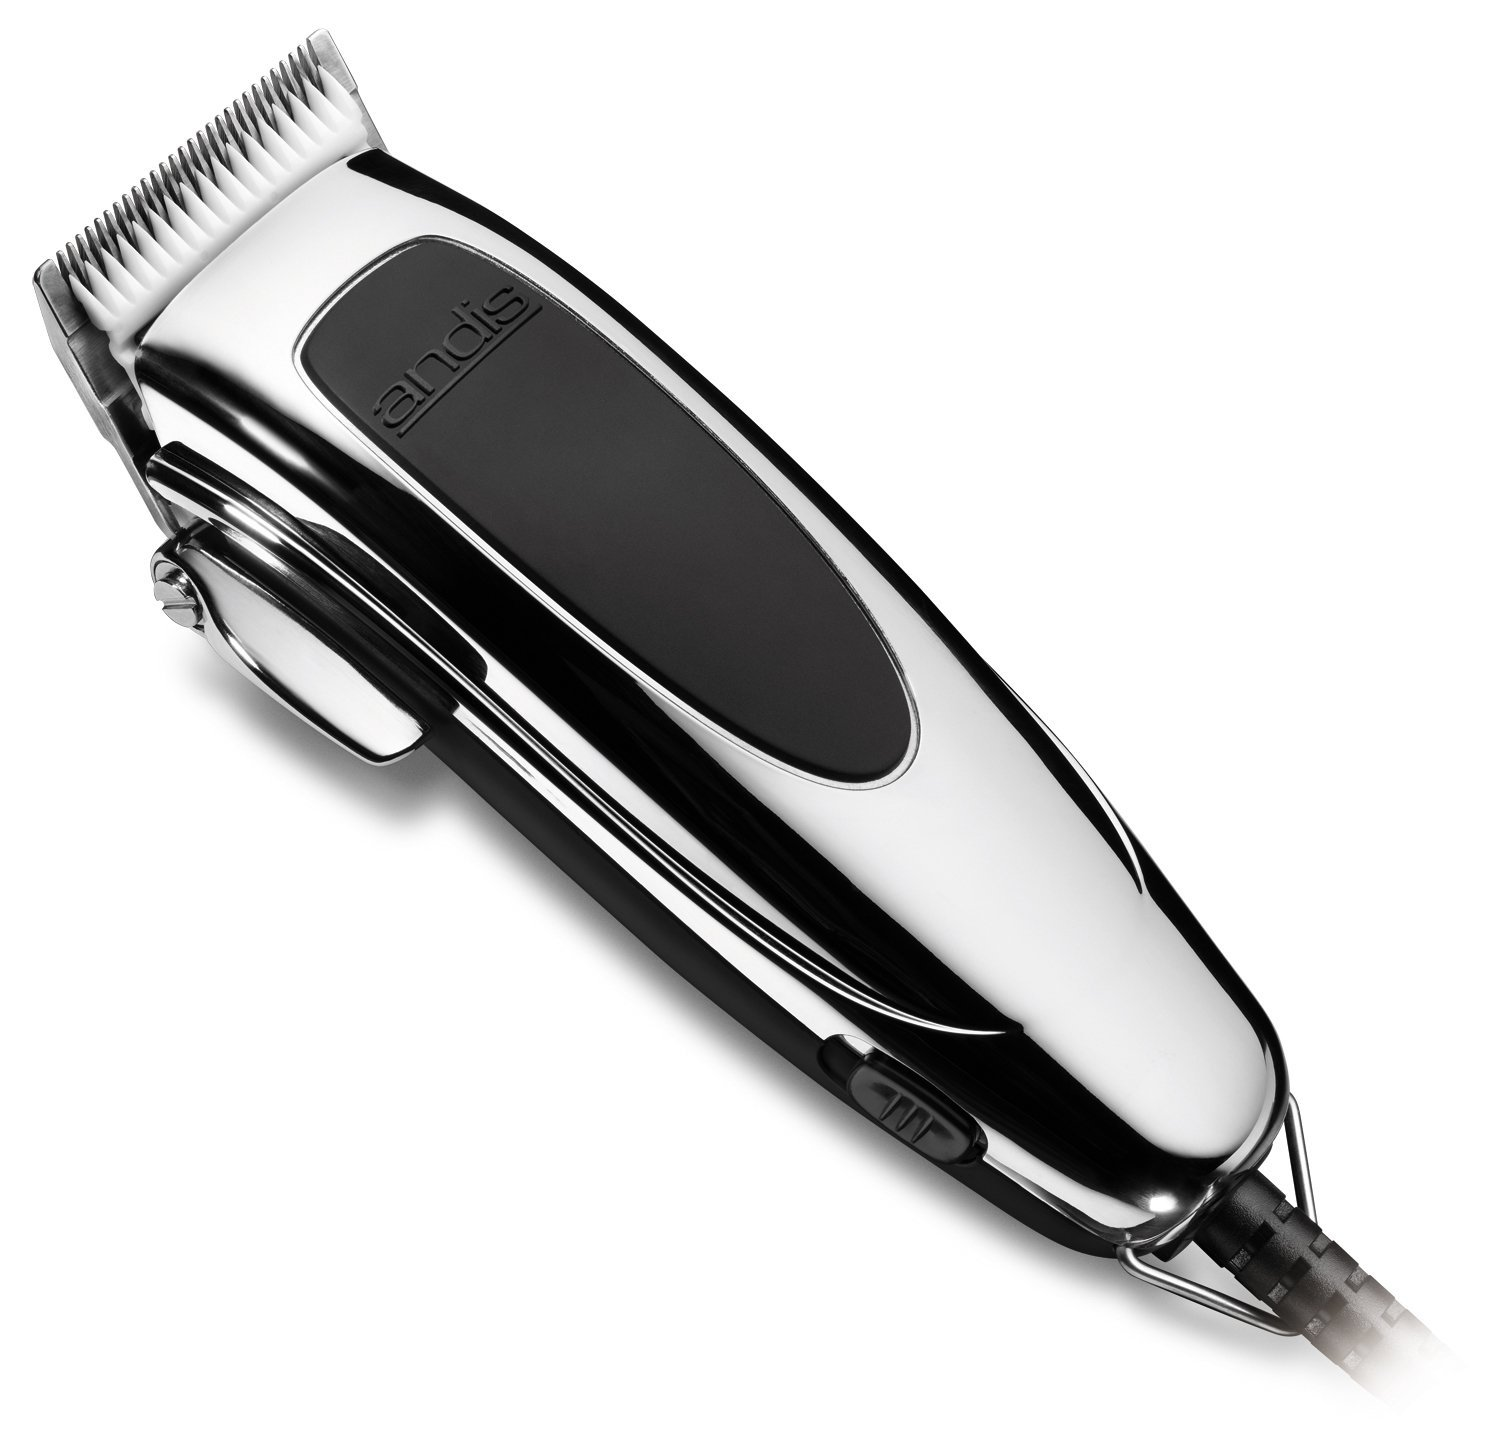 Barbers clipper clipart clipart royalty free stock Barber clippers clipart 8 » Clipart Station clipart royalty free stock